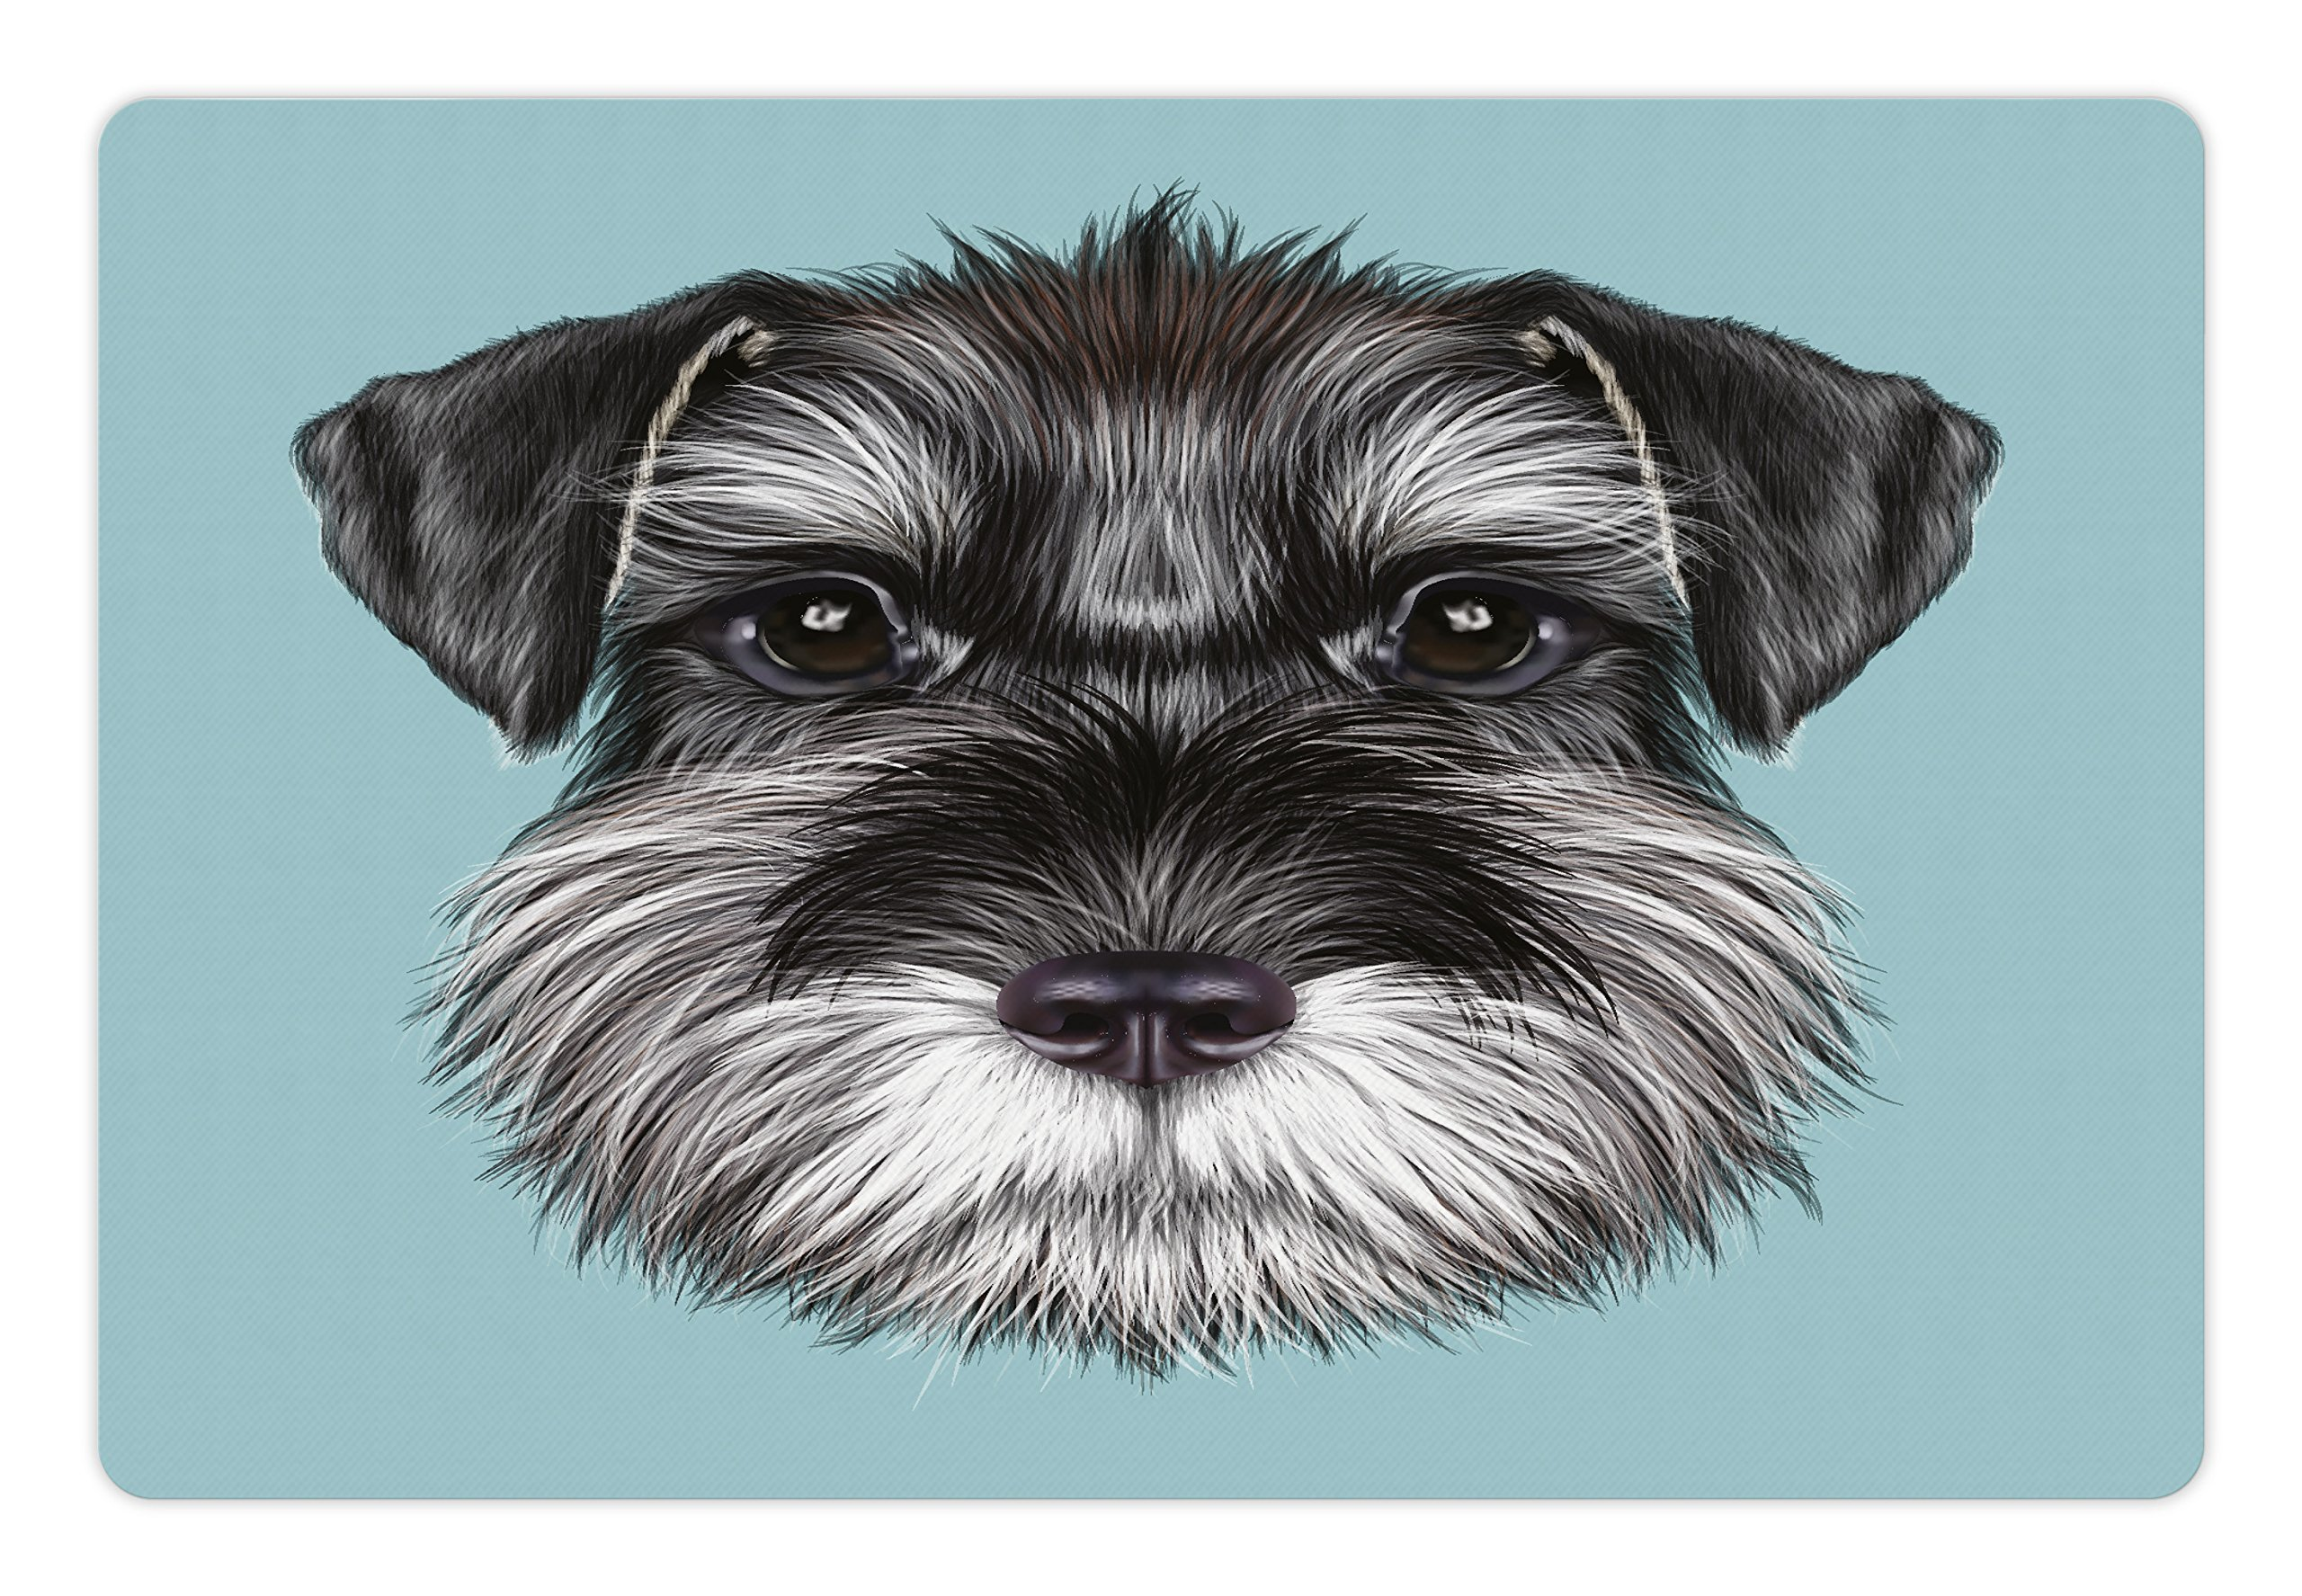 Lunarable Animal Pet Mat for Food and Water, Illustration of a Cute Baby Schnauzer on Blue Background Puppy Portrait, Rectangle Non-Slip Rubber Mat for Dogs and Cats, Light Blue Black White